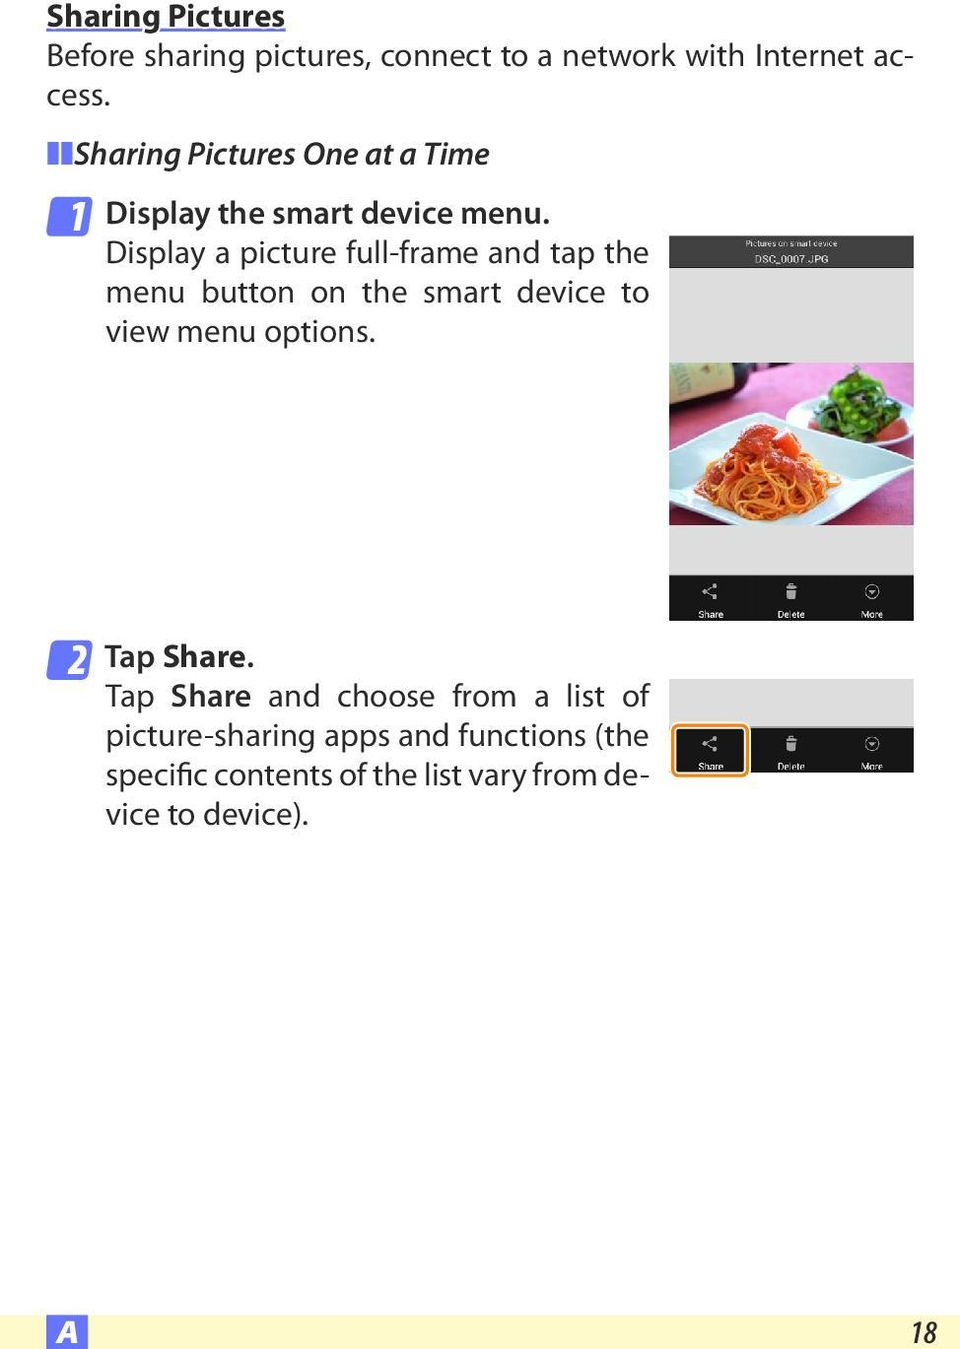 Display a picture full-frame and tap the menu button on the smart device to view menu options.